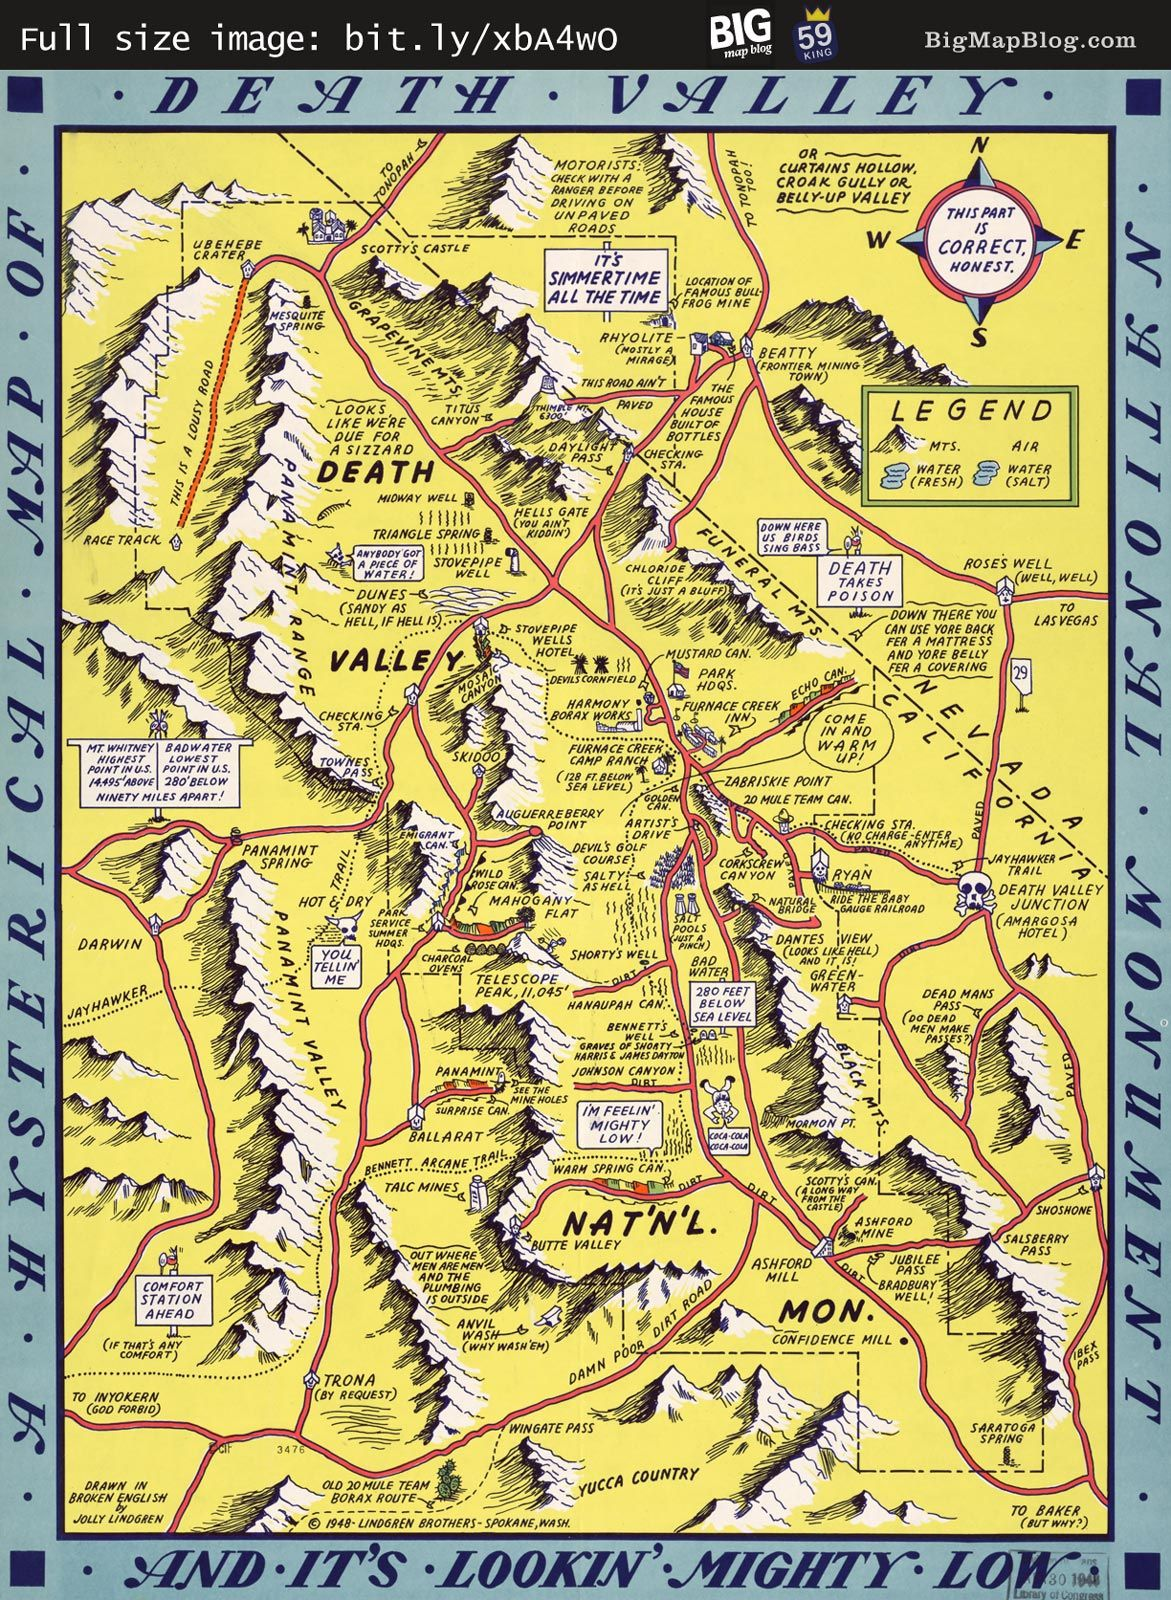 Pin by Mike D on Cartography | Pinterest | Map, Death valley and ...